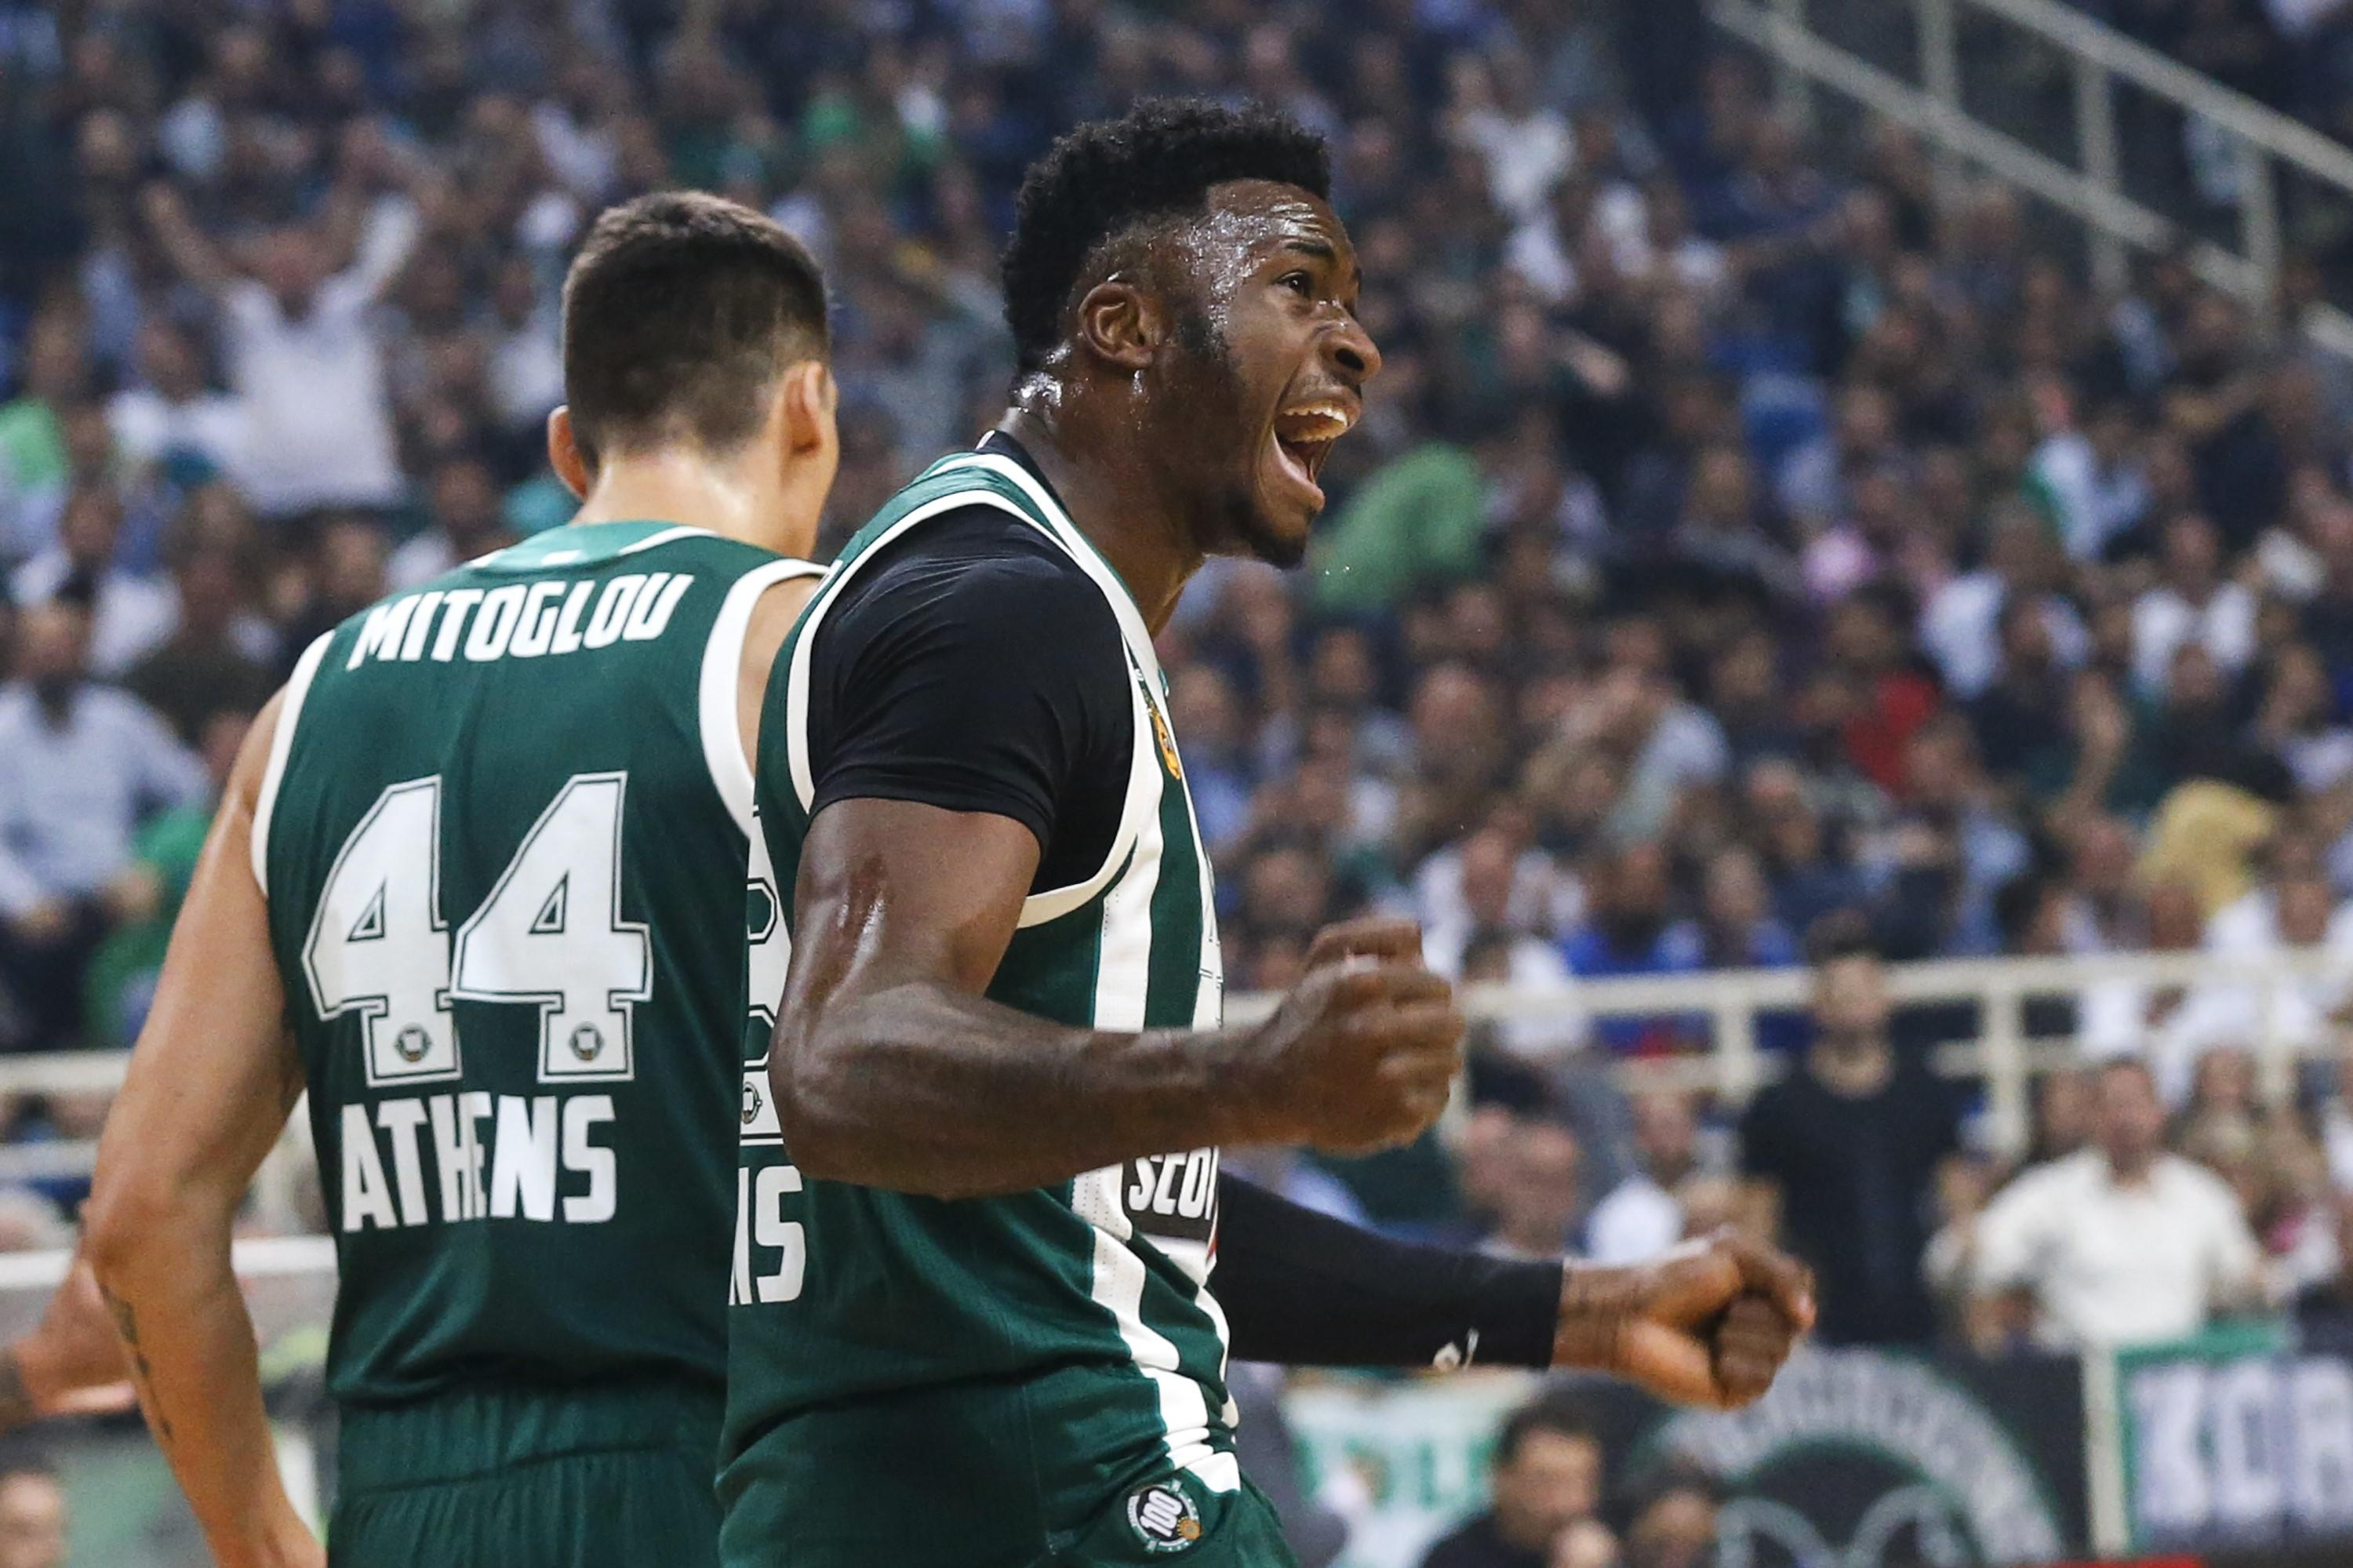 Report: Bucks sign Thanasis Antetokounmpo to two-year deal